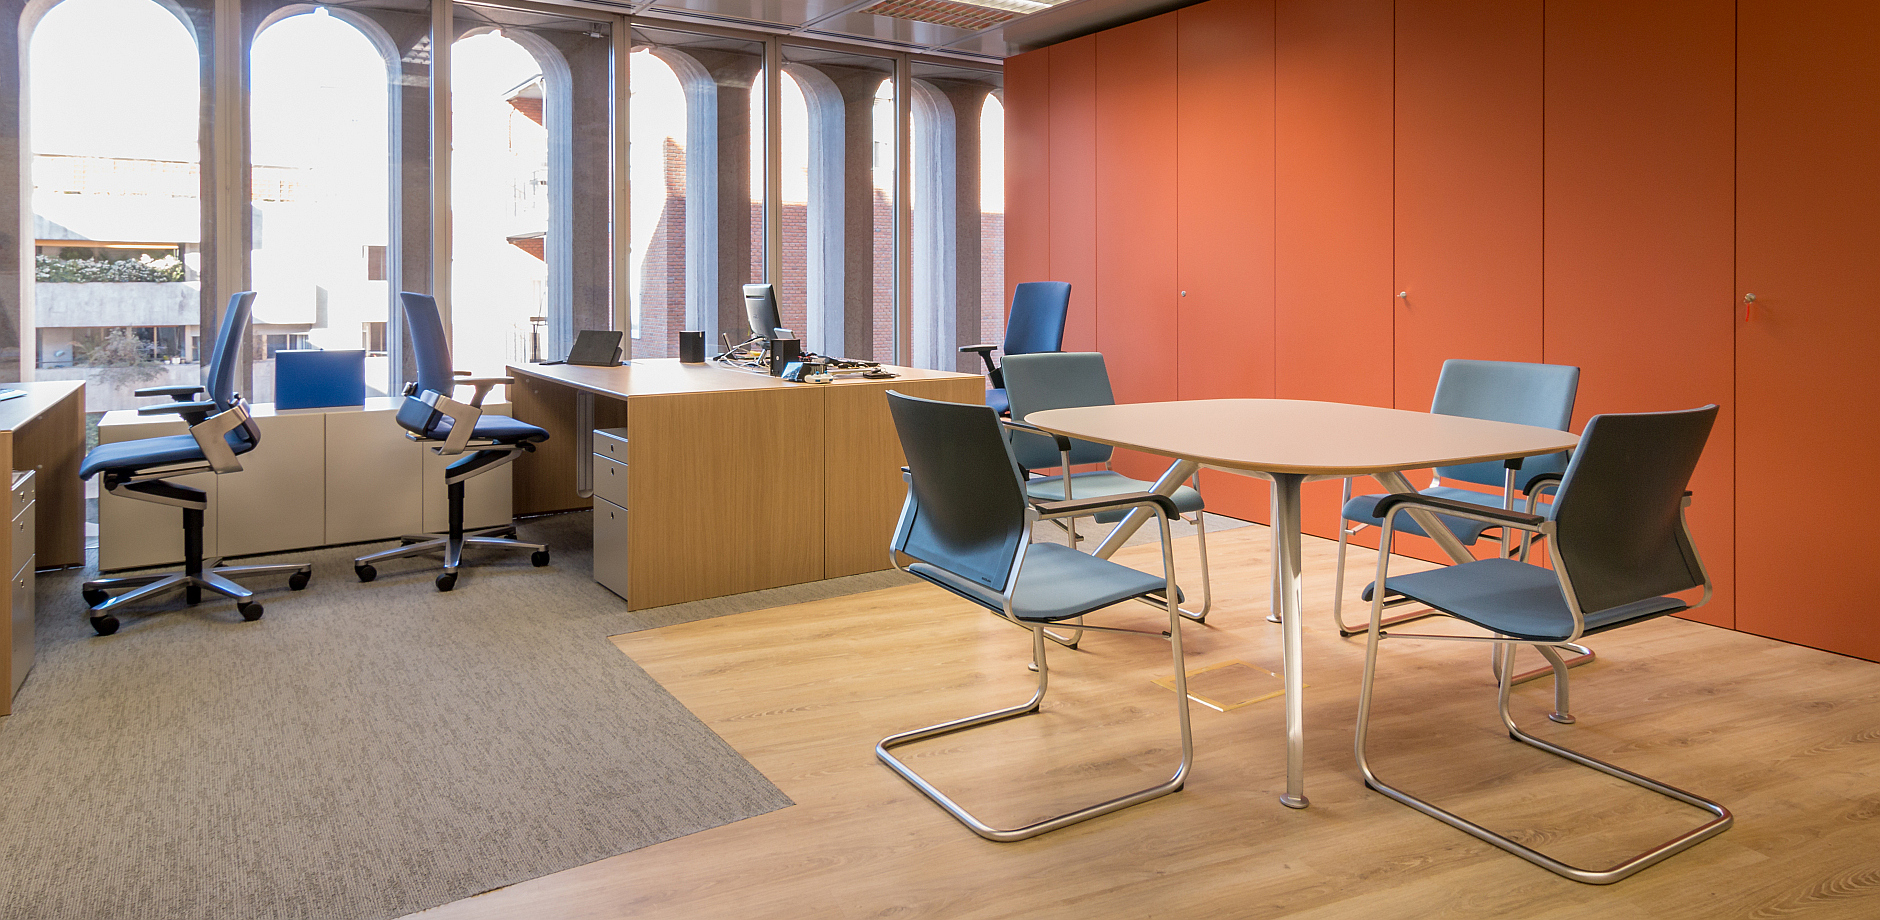 Real estate company, ON office chair, Sito cantilever chair, Graph table, Wilkhahn